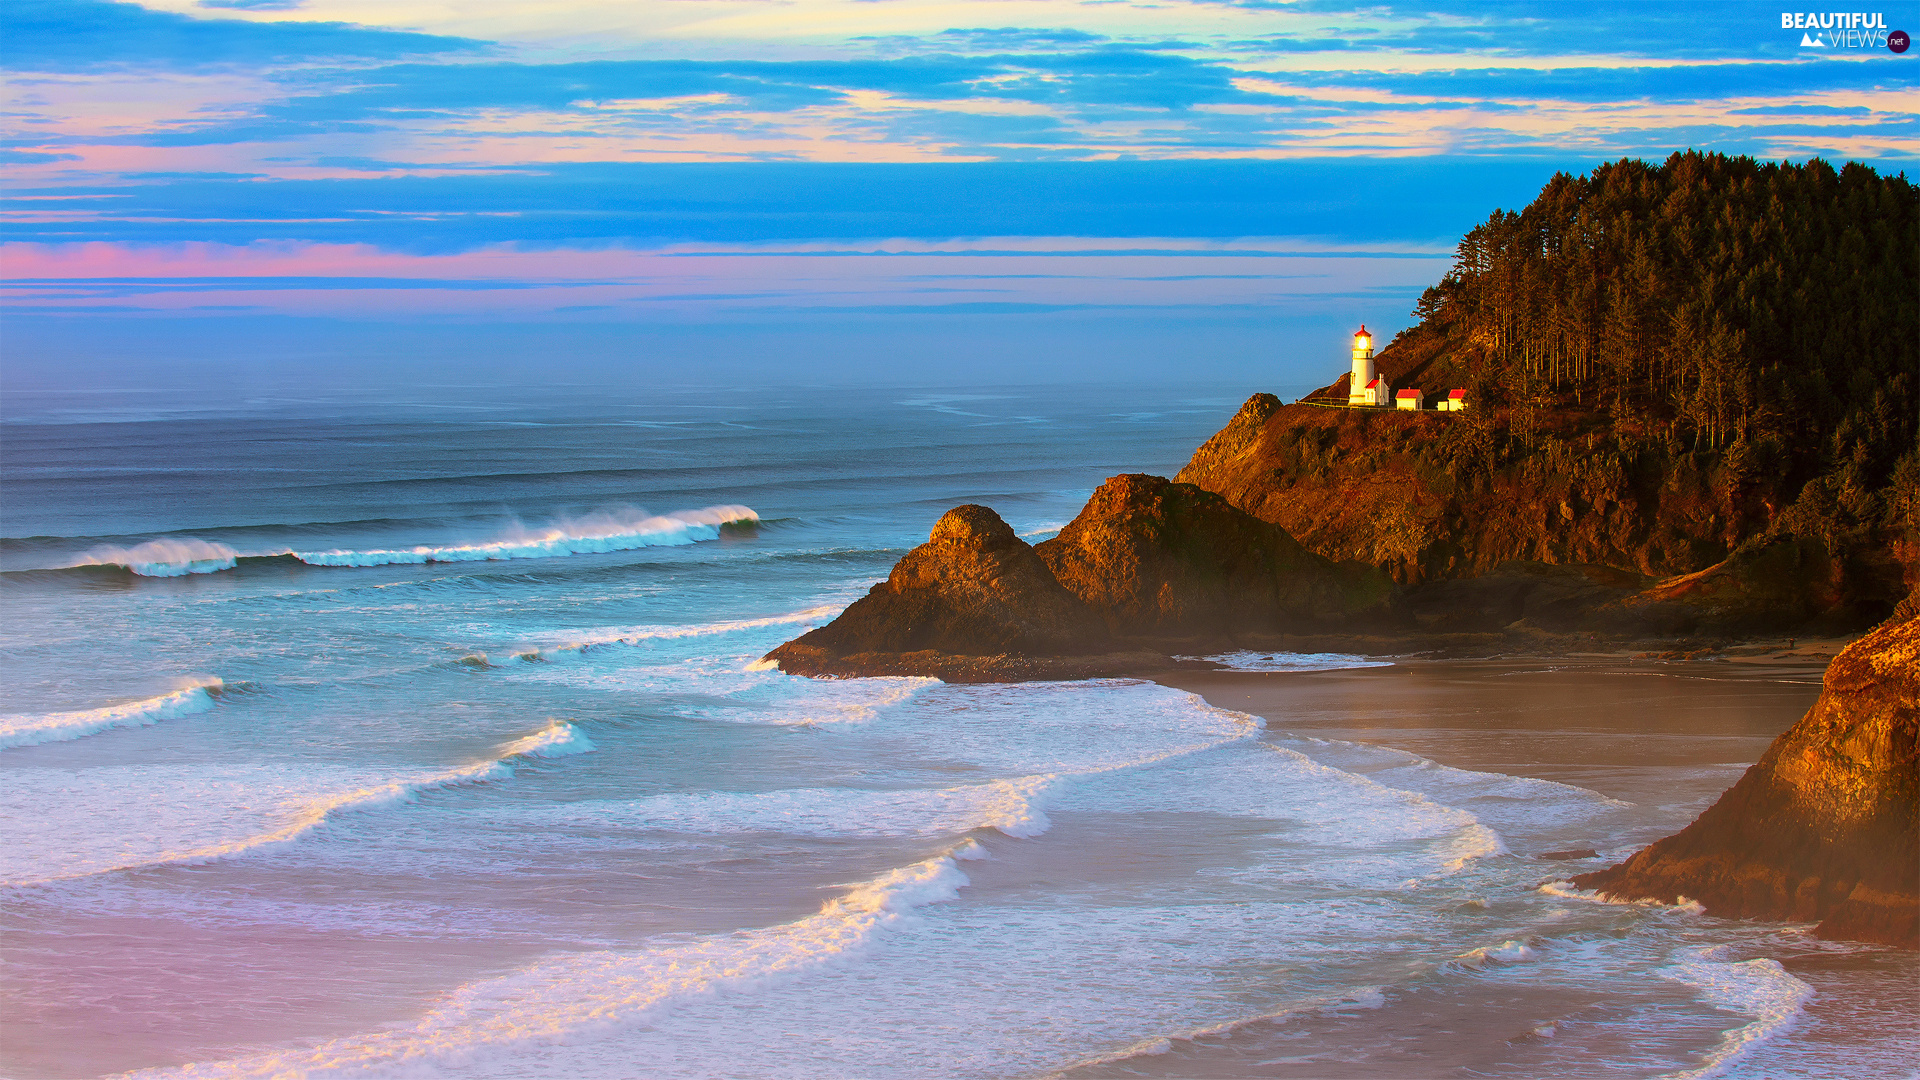 Coast, The United States, Sky, Lighthouse Heceta Head, sea, State of Oregon